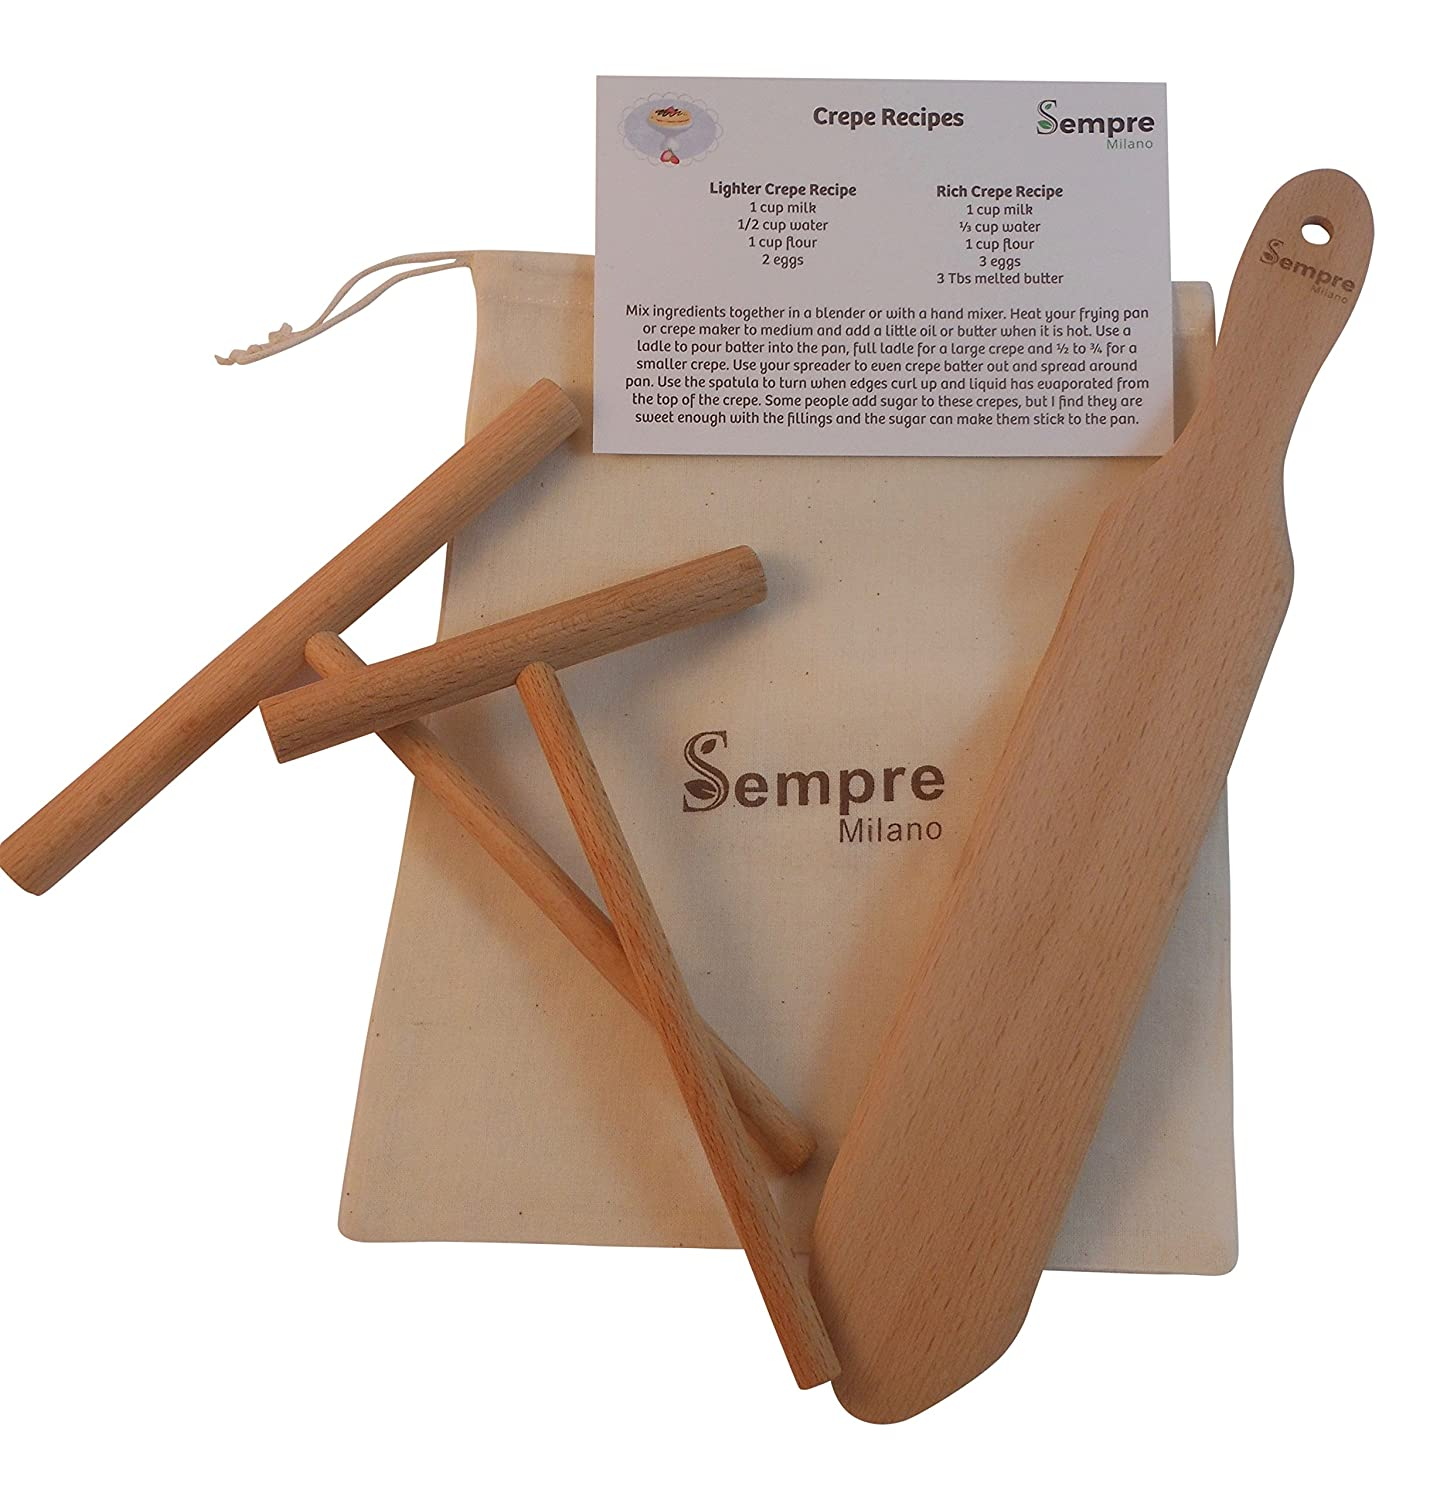 Crepe Spreader and Spatula Set Natural Beechwood 3 Piece Kit (5 and 7 Spreaders and 13 Spatula) in Handy Storage Bag with Bonus Recipe Card by Sempre Sempre Milano 3 piece crepe set